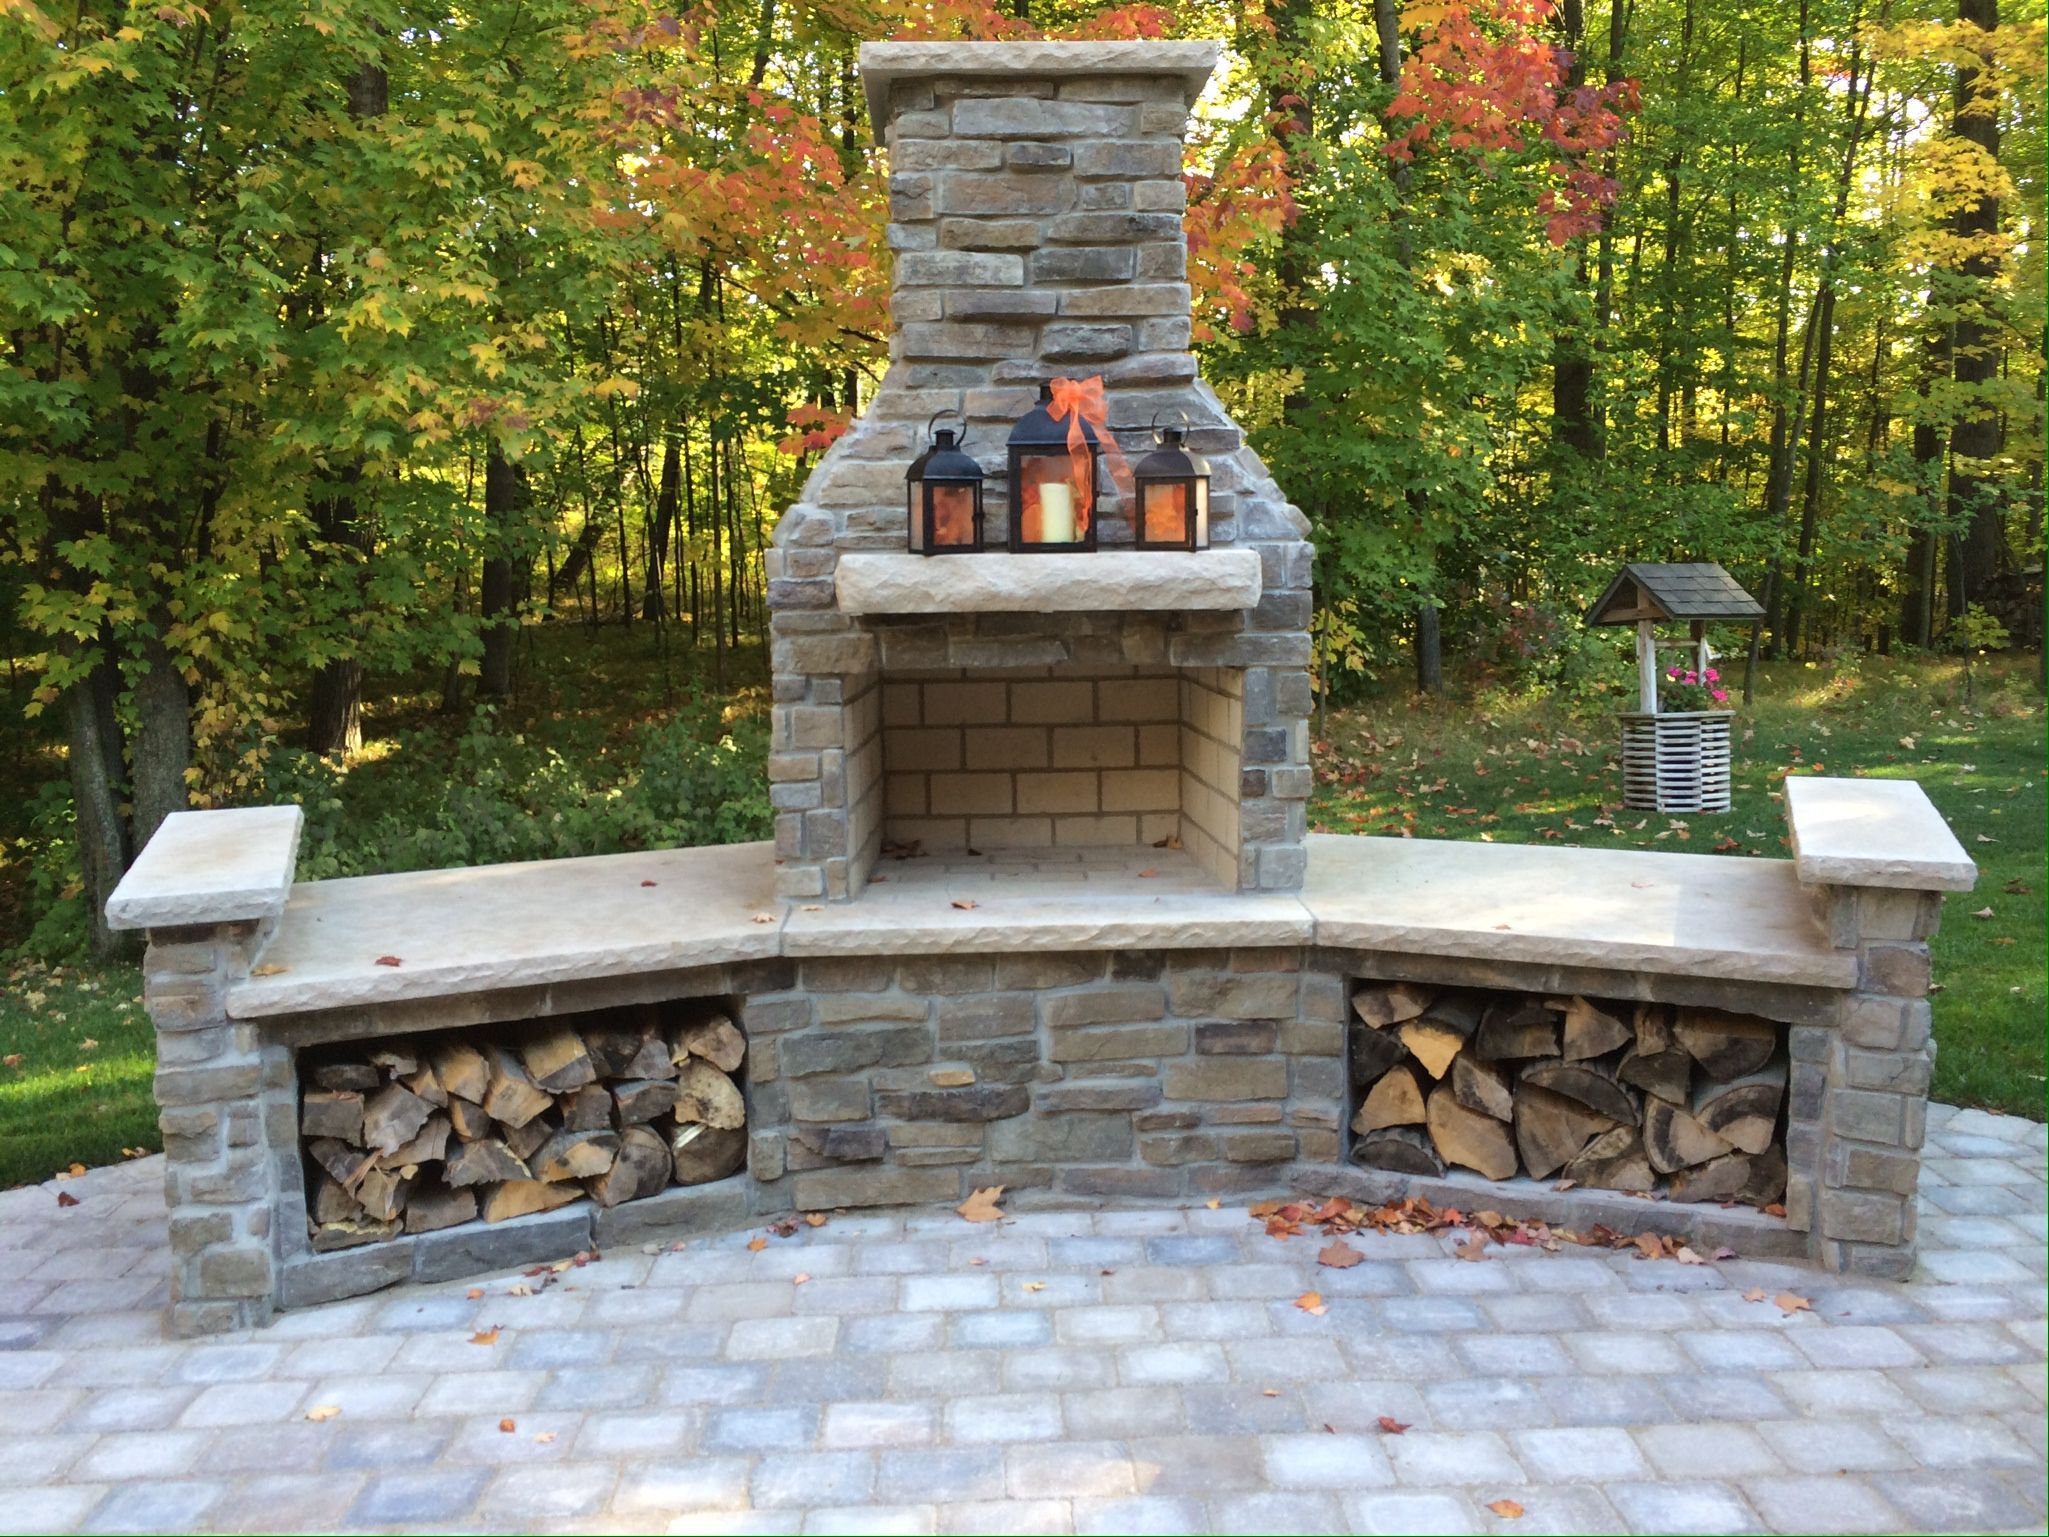 25 best outdoor fireplace images on pinterest outdoor fireplaces